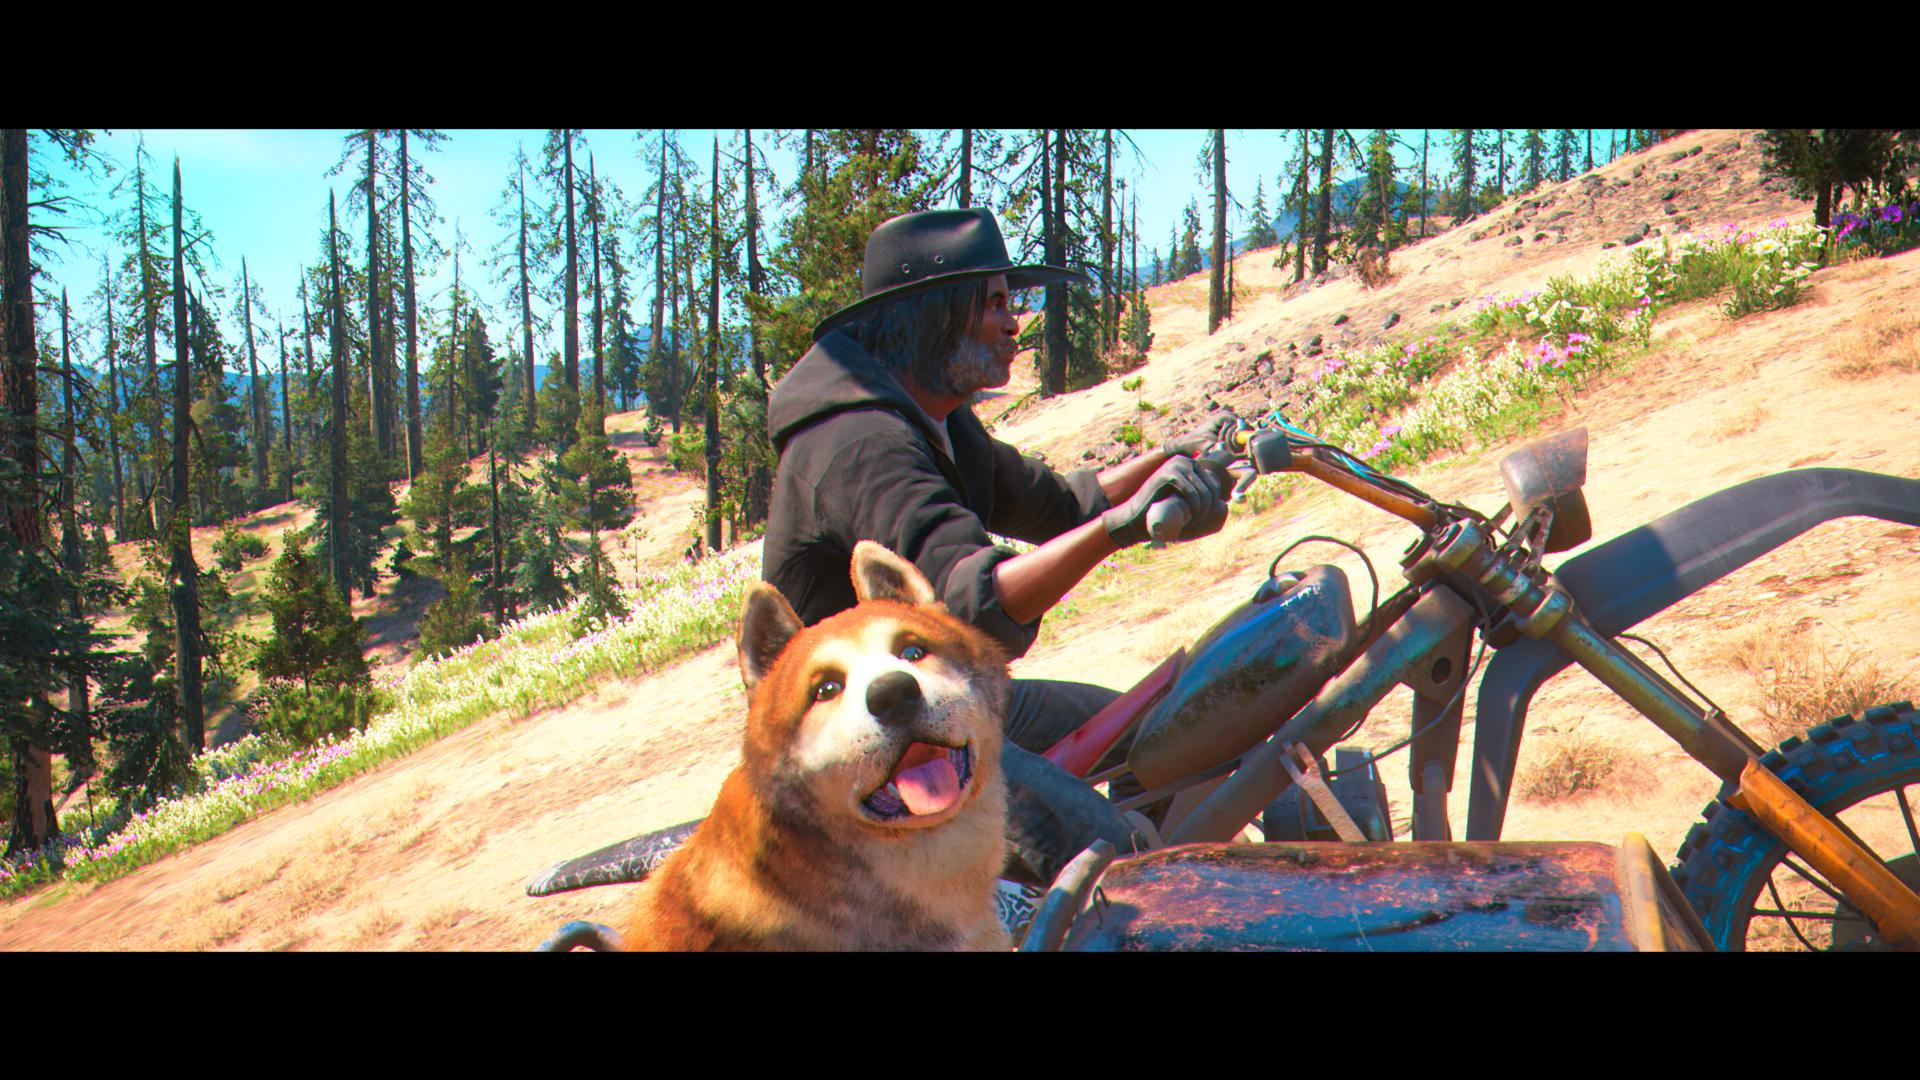 It's the player driving uphill on their motorbike with a dog in the sidecar.